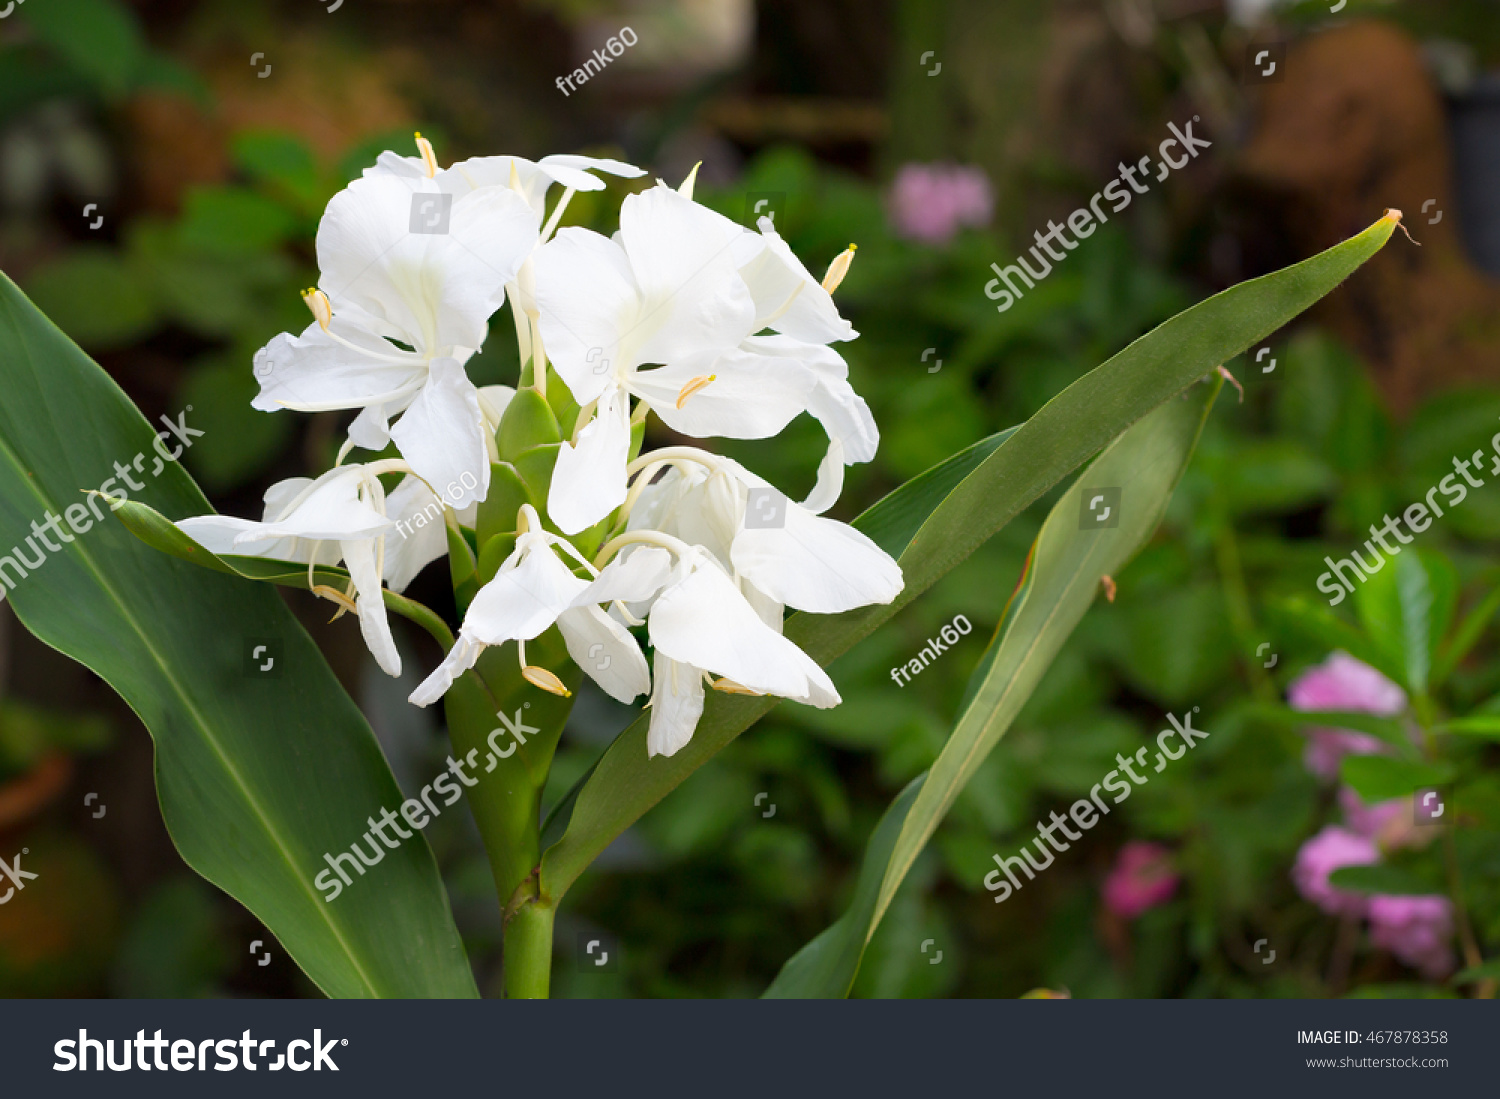 White ginger flowers called garland lily stock photo royalty free white ginger flowers it also called garland lily sweet white ginger or butterfly ginger this mightylinksfo